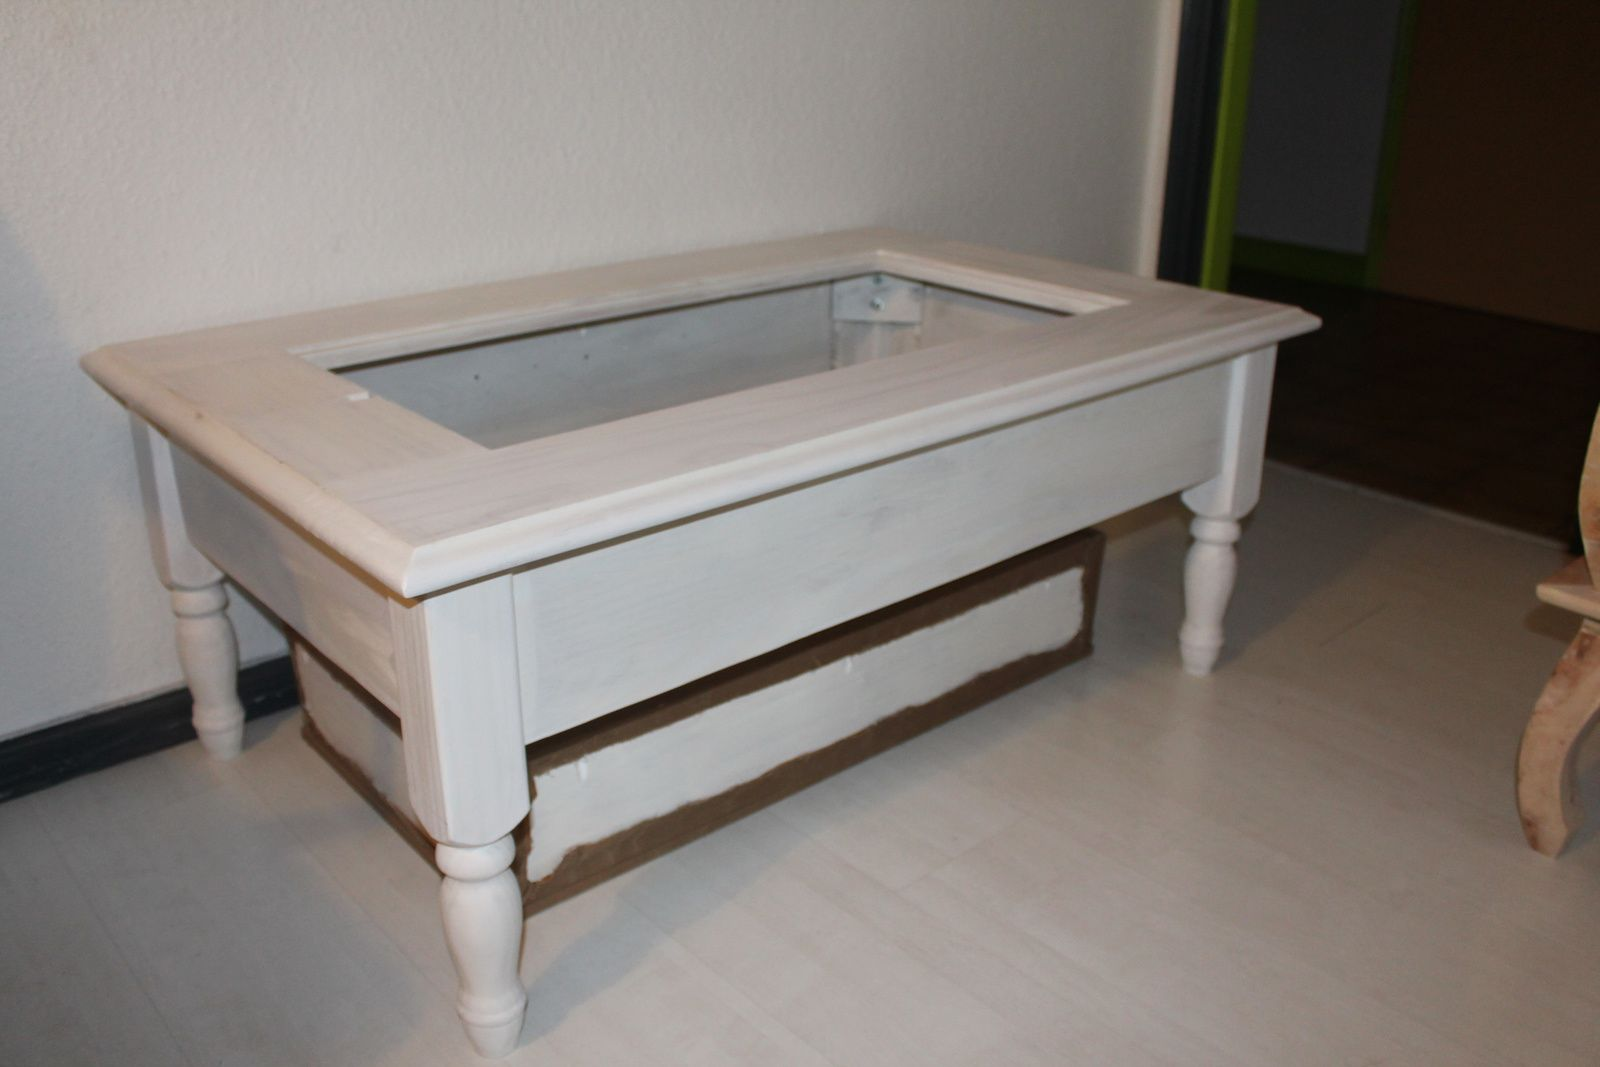 Ensemble Table Basse Meuble Tv Cin Ma 30 S Dieloart # Ensemble Meuble Tv Et Table Basse